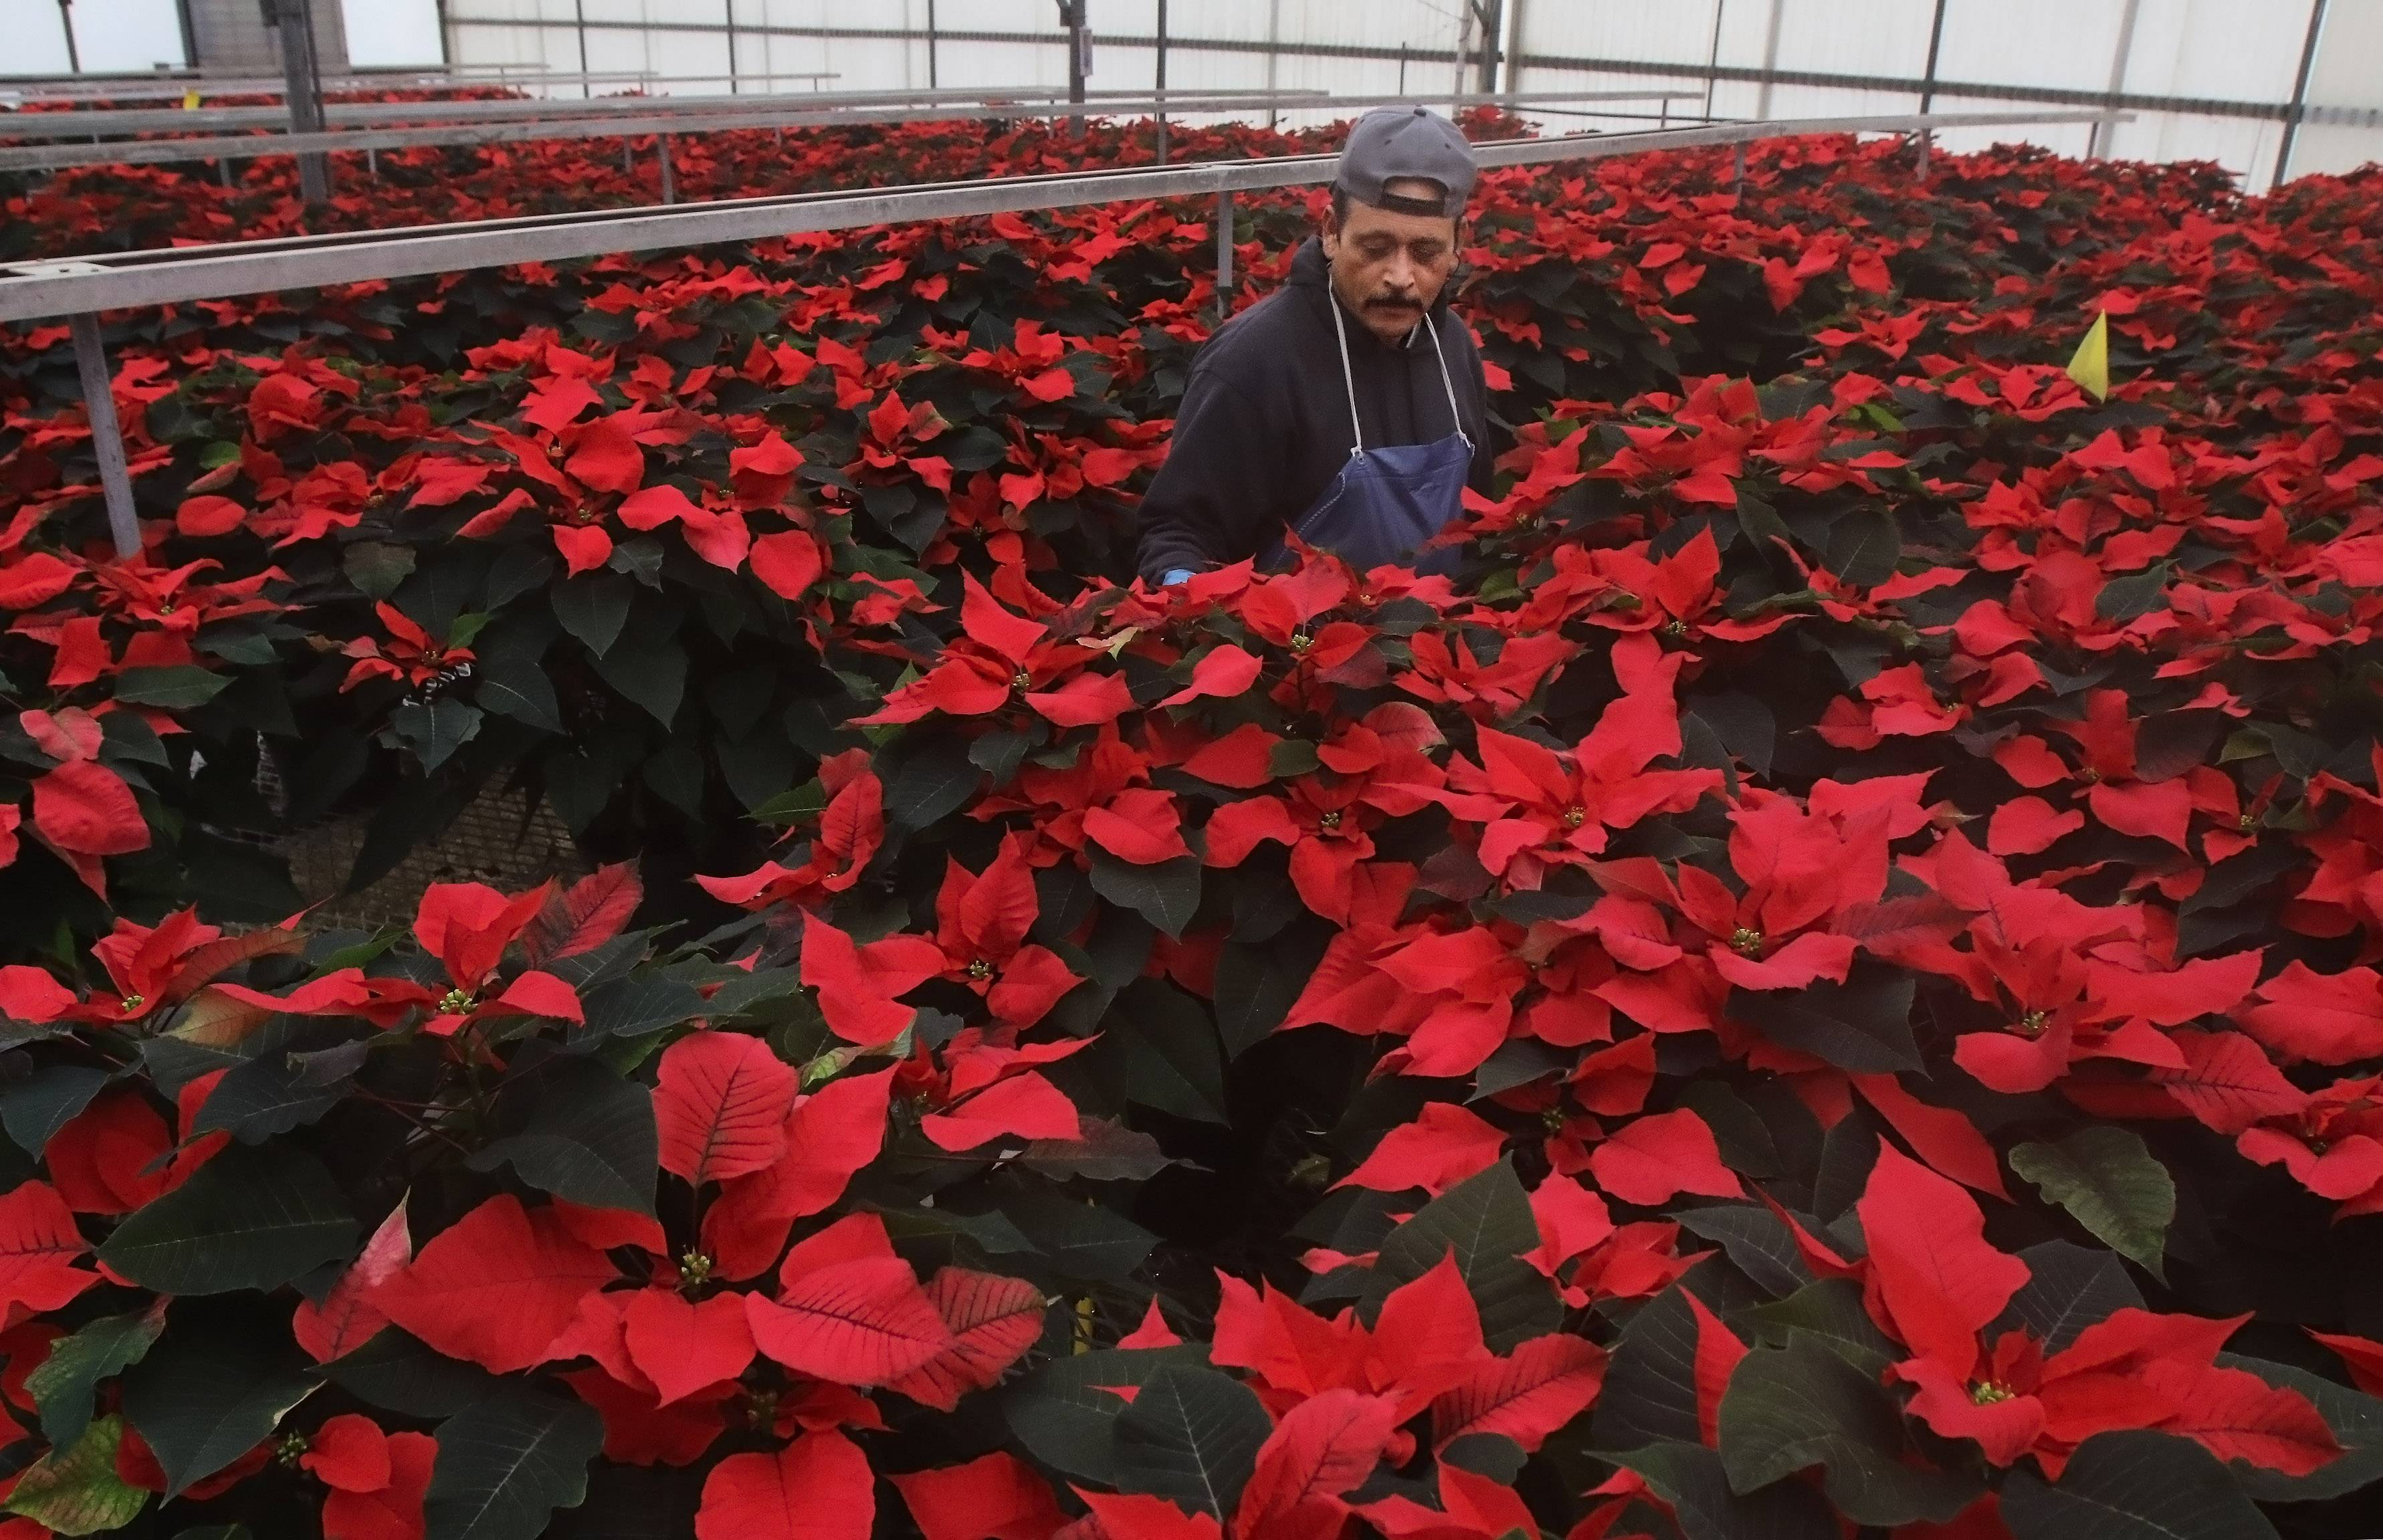 Nursery employee Javier Orduna waters the poinsettias at Leider Greenhouses in Buffalo Grove Wednesday. The nursery produces more than 200,000 poinsettias for the holiday season.